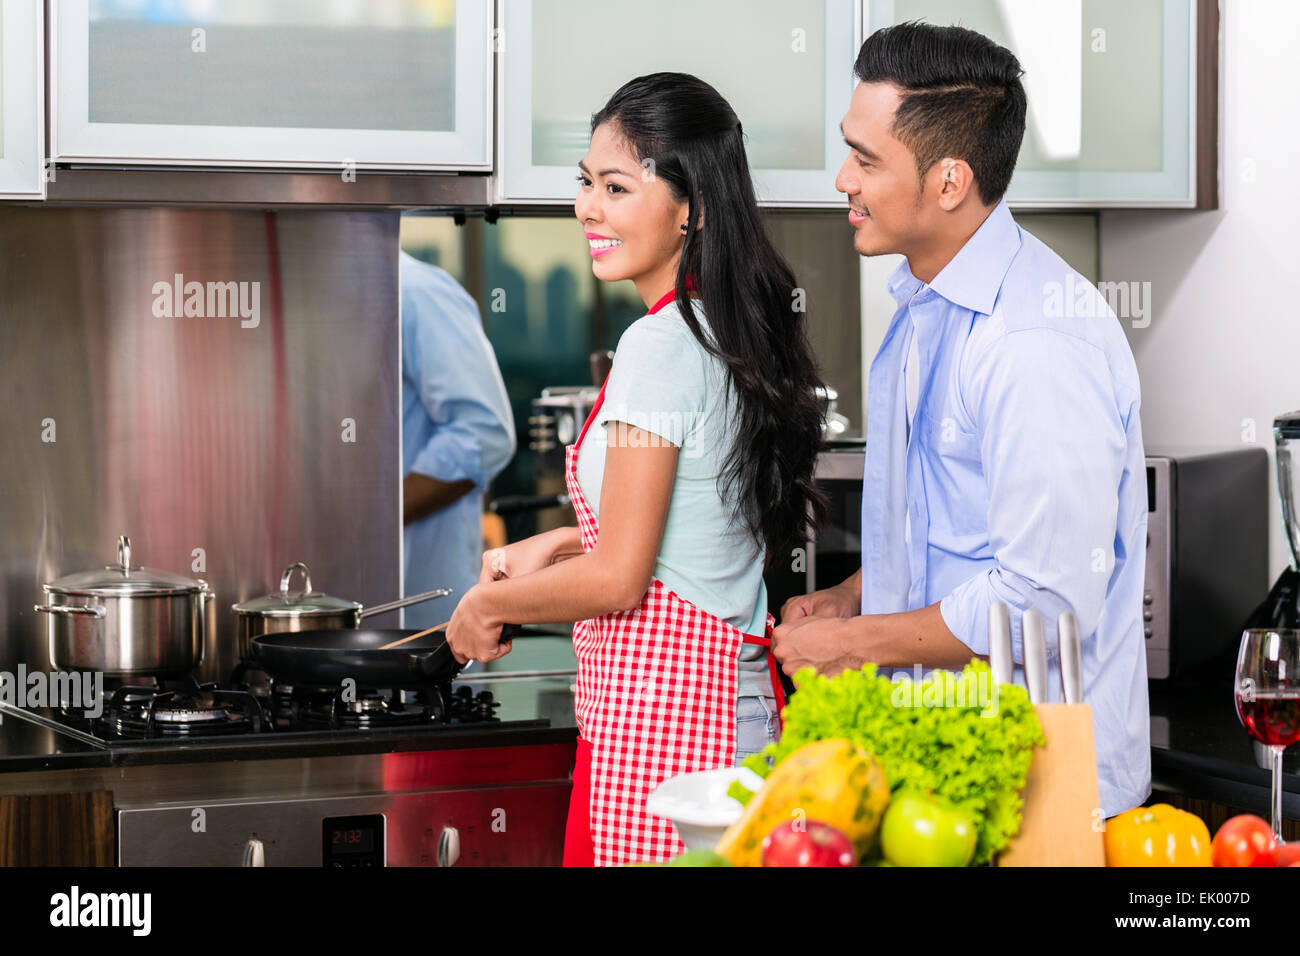 Couple in domestic Kitchen cooking food Stock Photo